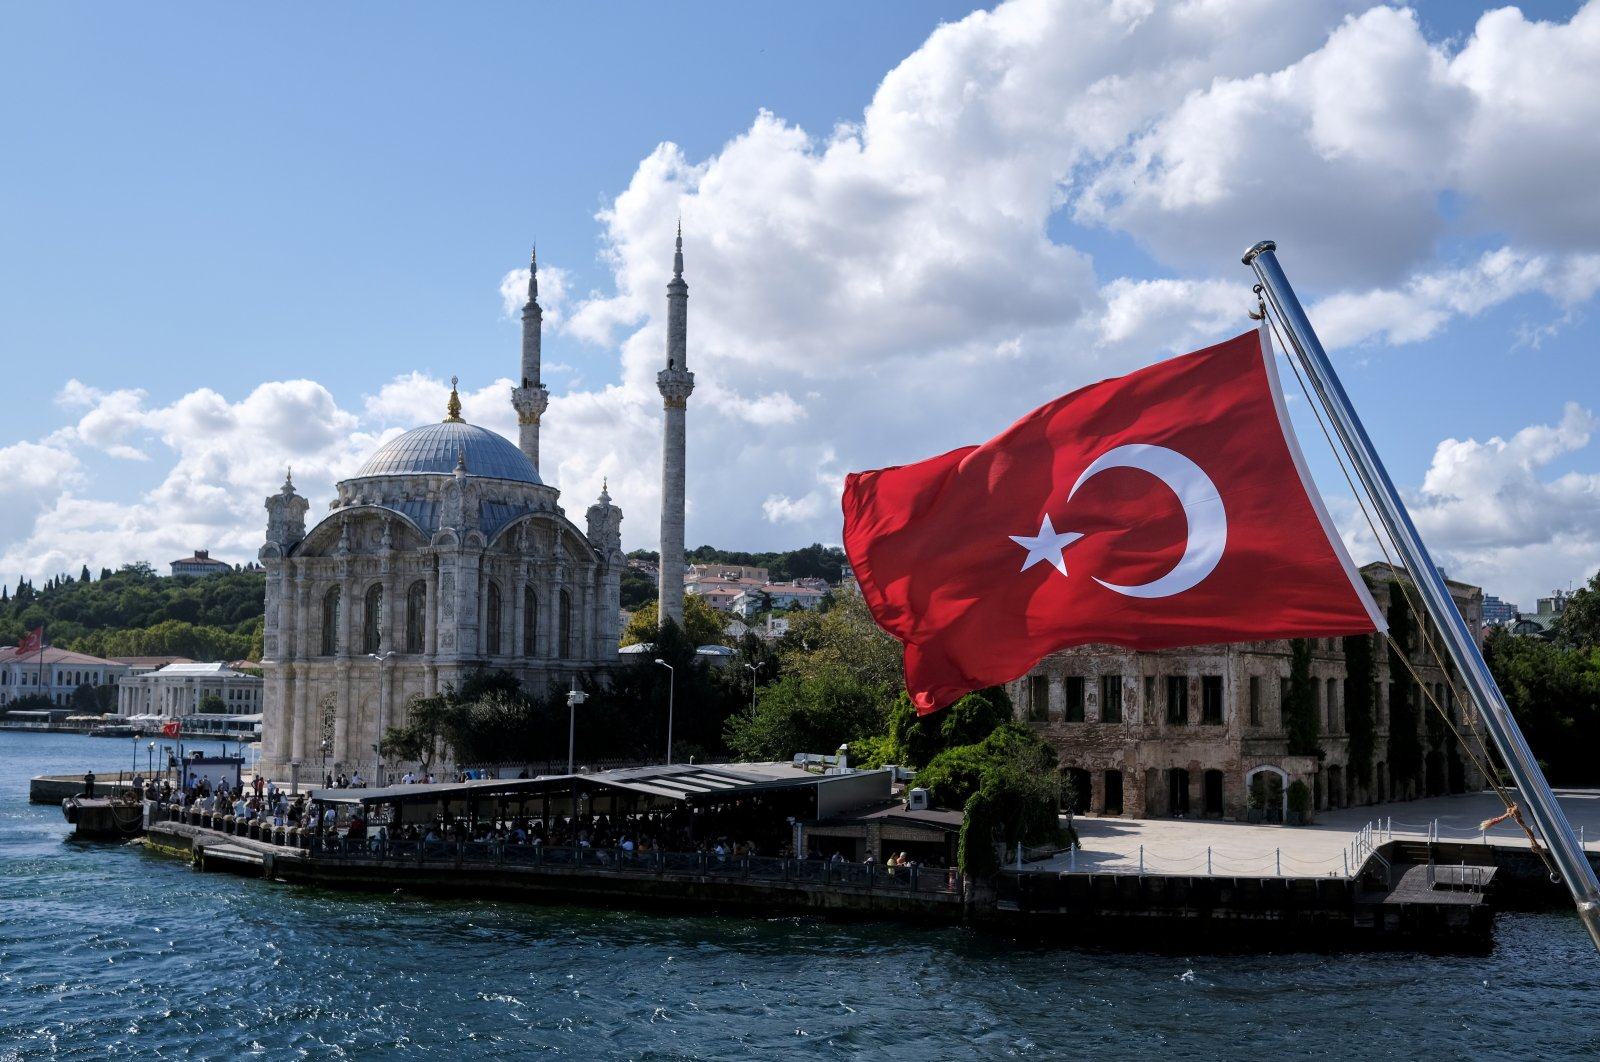 A Turkish flag is pictured on a boat with the Ortaköy Mosque in the background in Istanbul, Turkey, Sep. 5, 2021. (Reuters Photo)